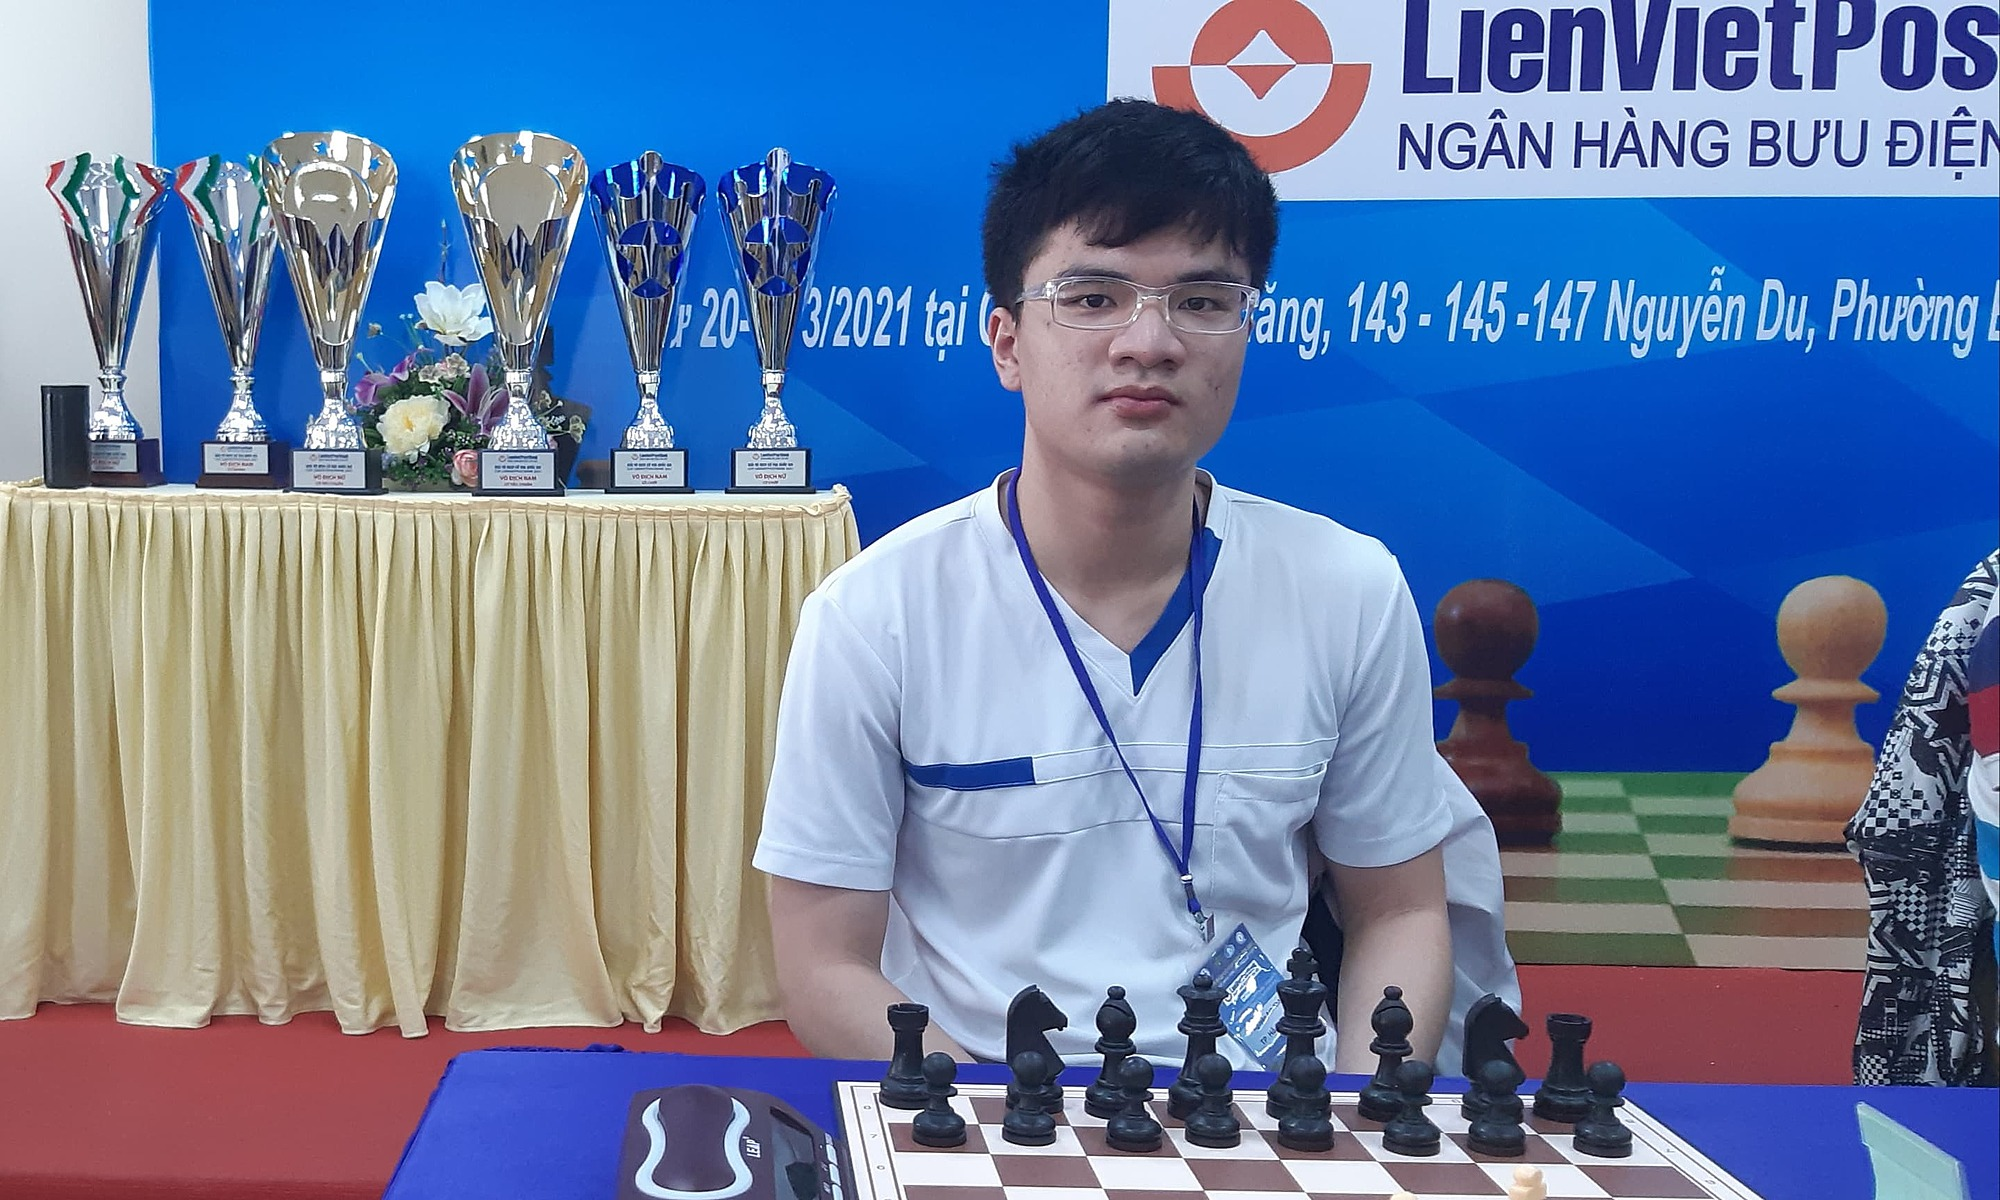 Mr. Khoi is Vietnam's 11th grandmaster. Recently, he rarely played because he is busy studying culture.